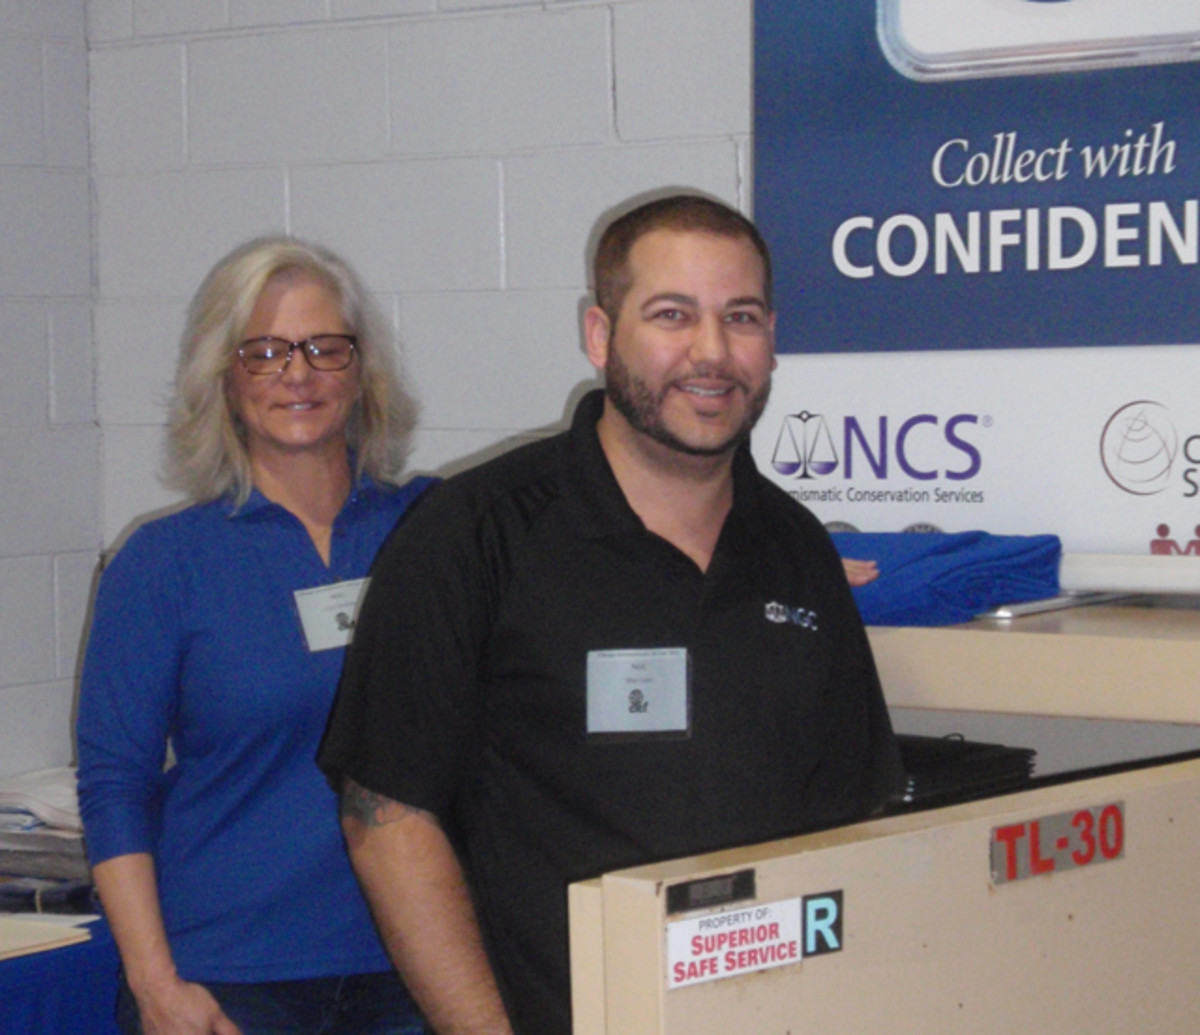 Opening the safe at the NGC table were Lisa Goolsby and Matt Gens.